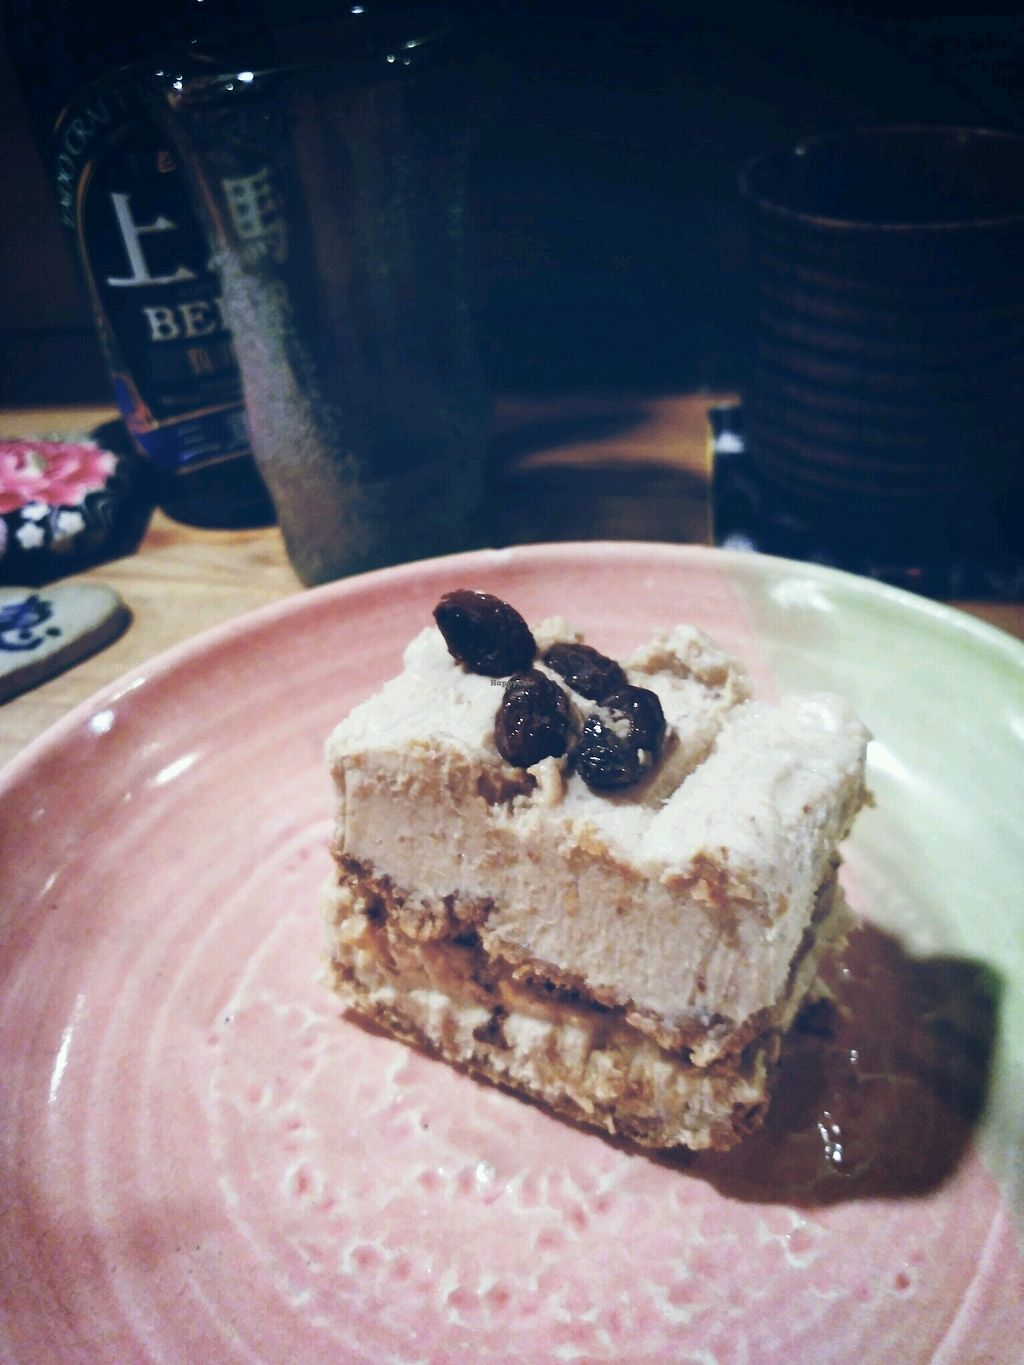 """Photo of Megumi  by <a href=""""/members/profile/Anameow"""">Anameow</a> <br/>Delicious piece of vegan cake <br/> August 26, 2017  - <a href='/contact/abuse/image/83651/297434'>Report</a>"""